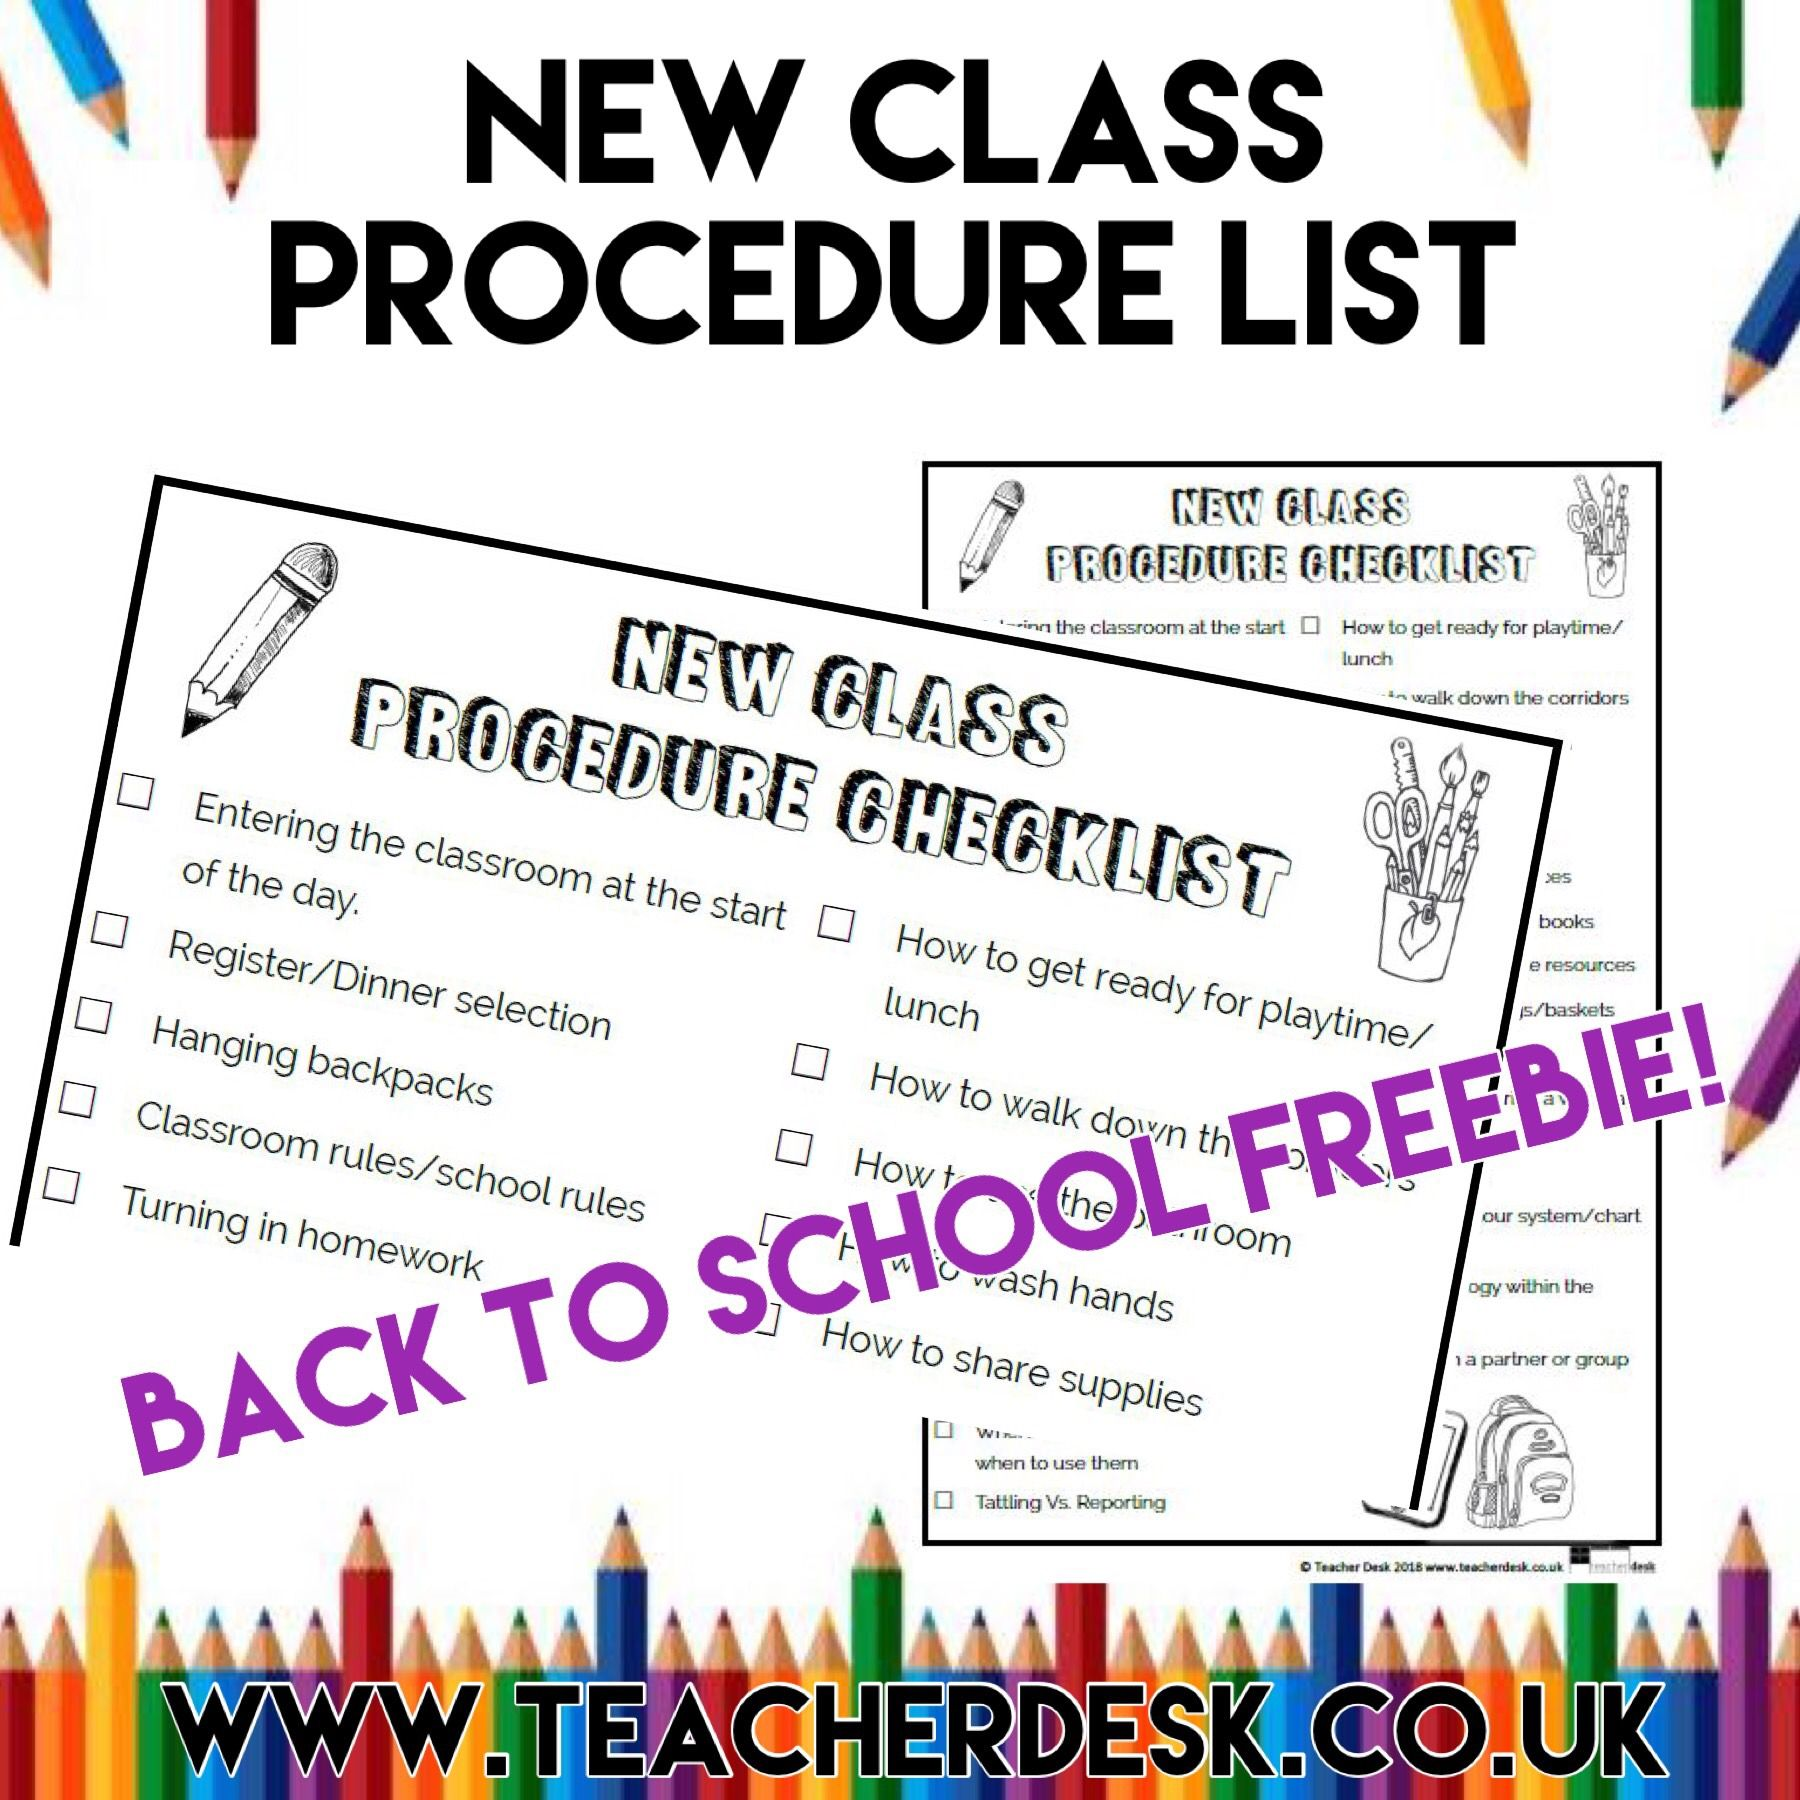 New Class Procedure List Teacher Desk Www Teacherdesk Co Uk New